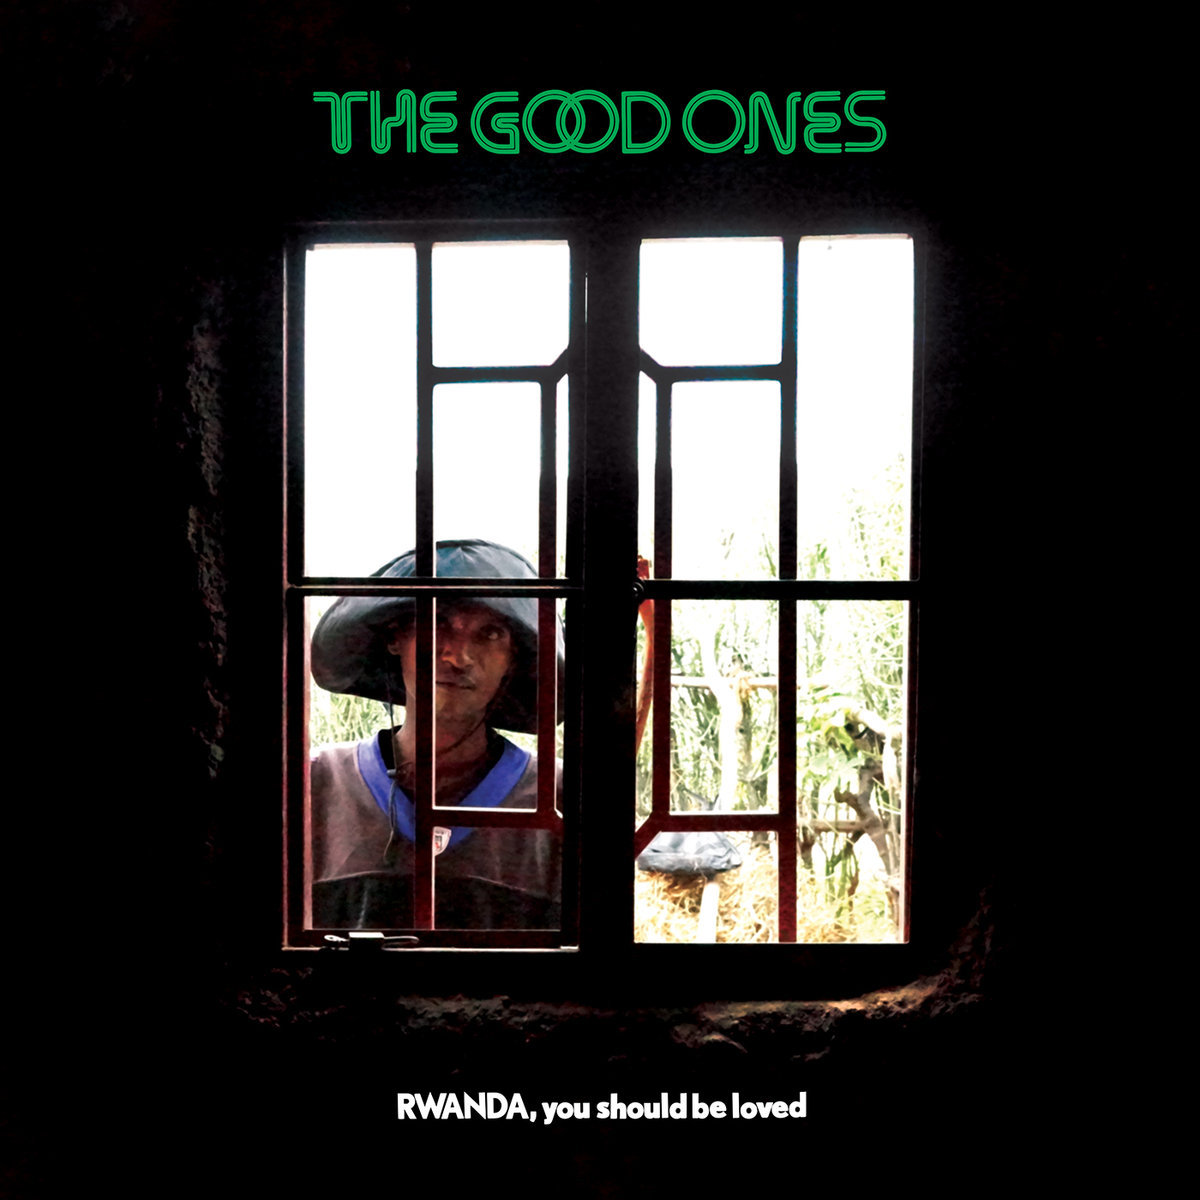 The Good Ones | Rwanda, You Should Be Loved